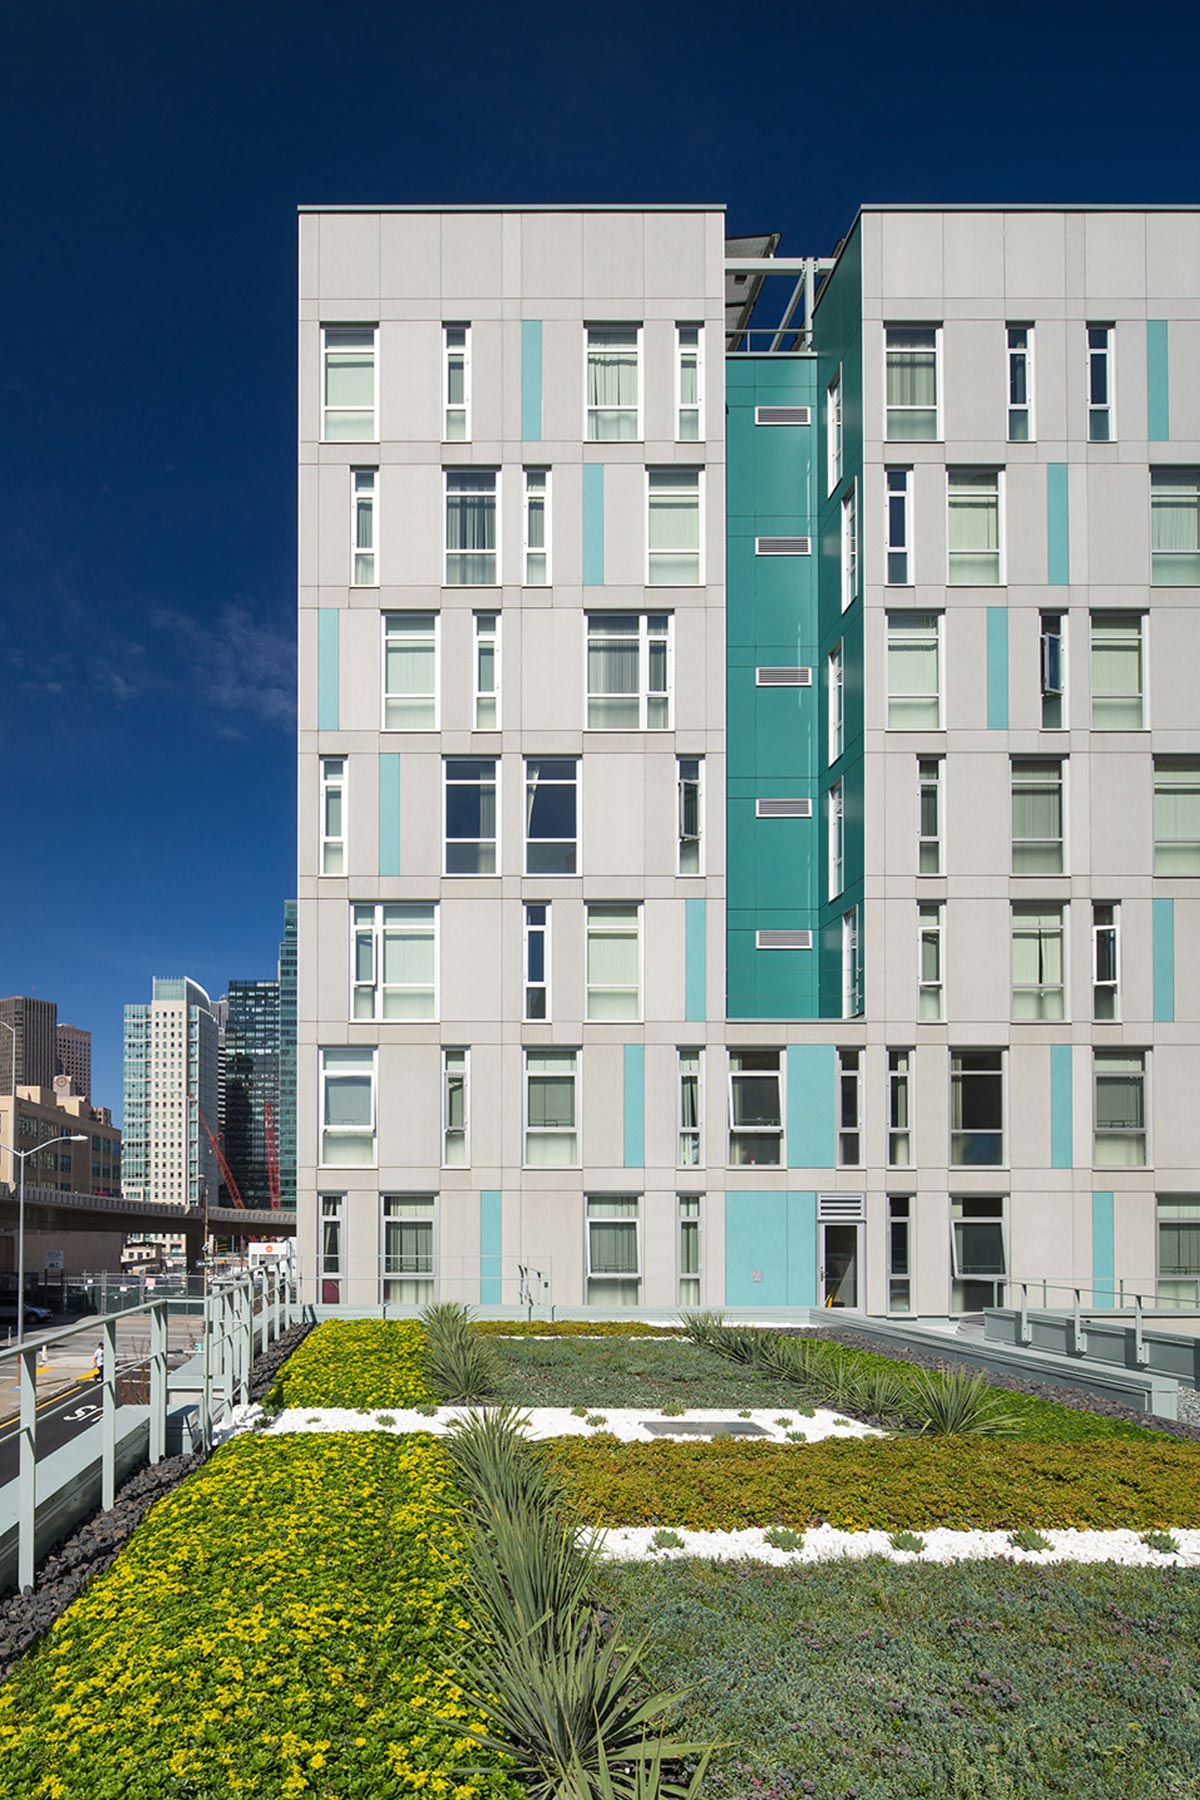 Rene Cazenave Apartments in San Francisco is a model of sustainability for affordable housing, providing permanent residences for formerly homeless individuals in the Transbay Redevelopment Area.